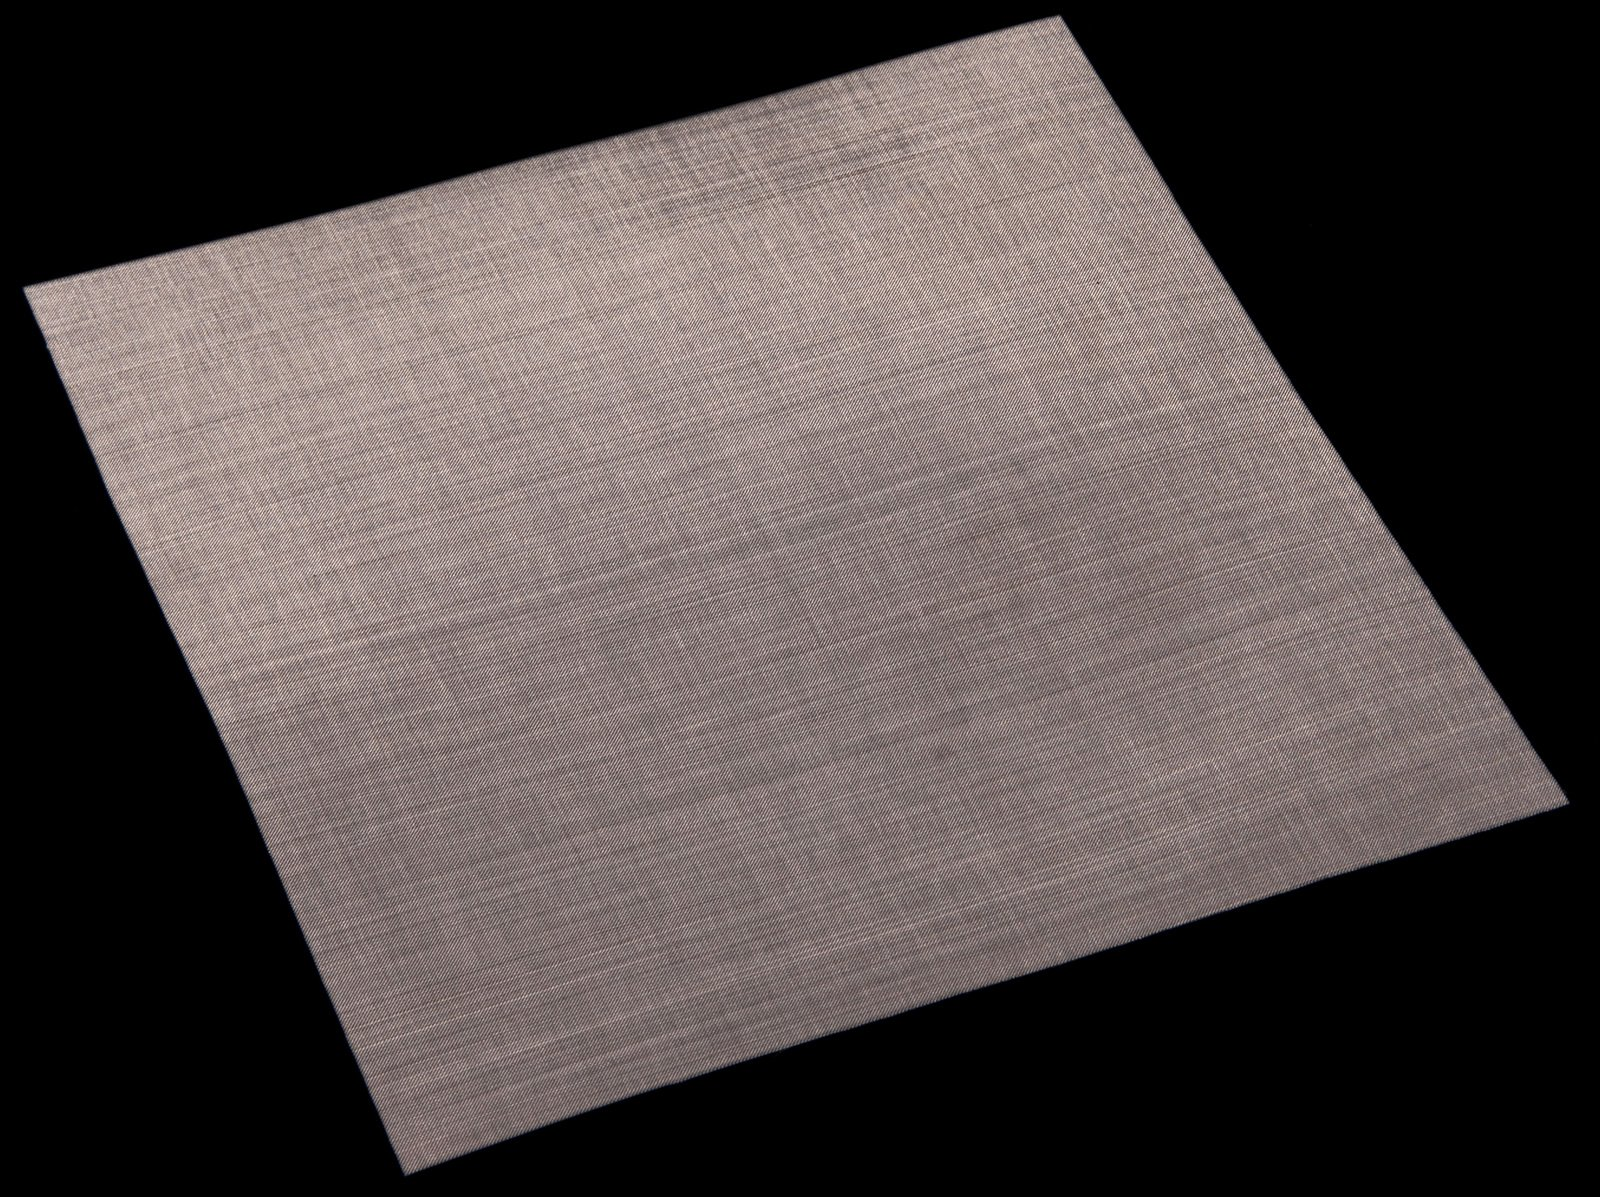 Woven Wire Mesh, 325 mesh (Stainless Steel 316L) – 0.054mm Aperture – By Inoxia Cut Size: Sample